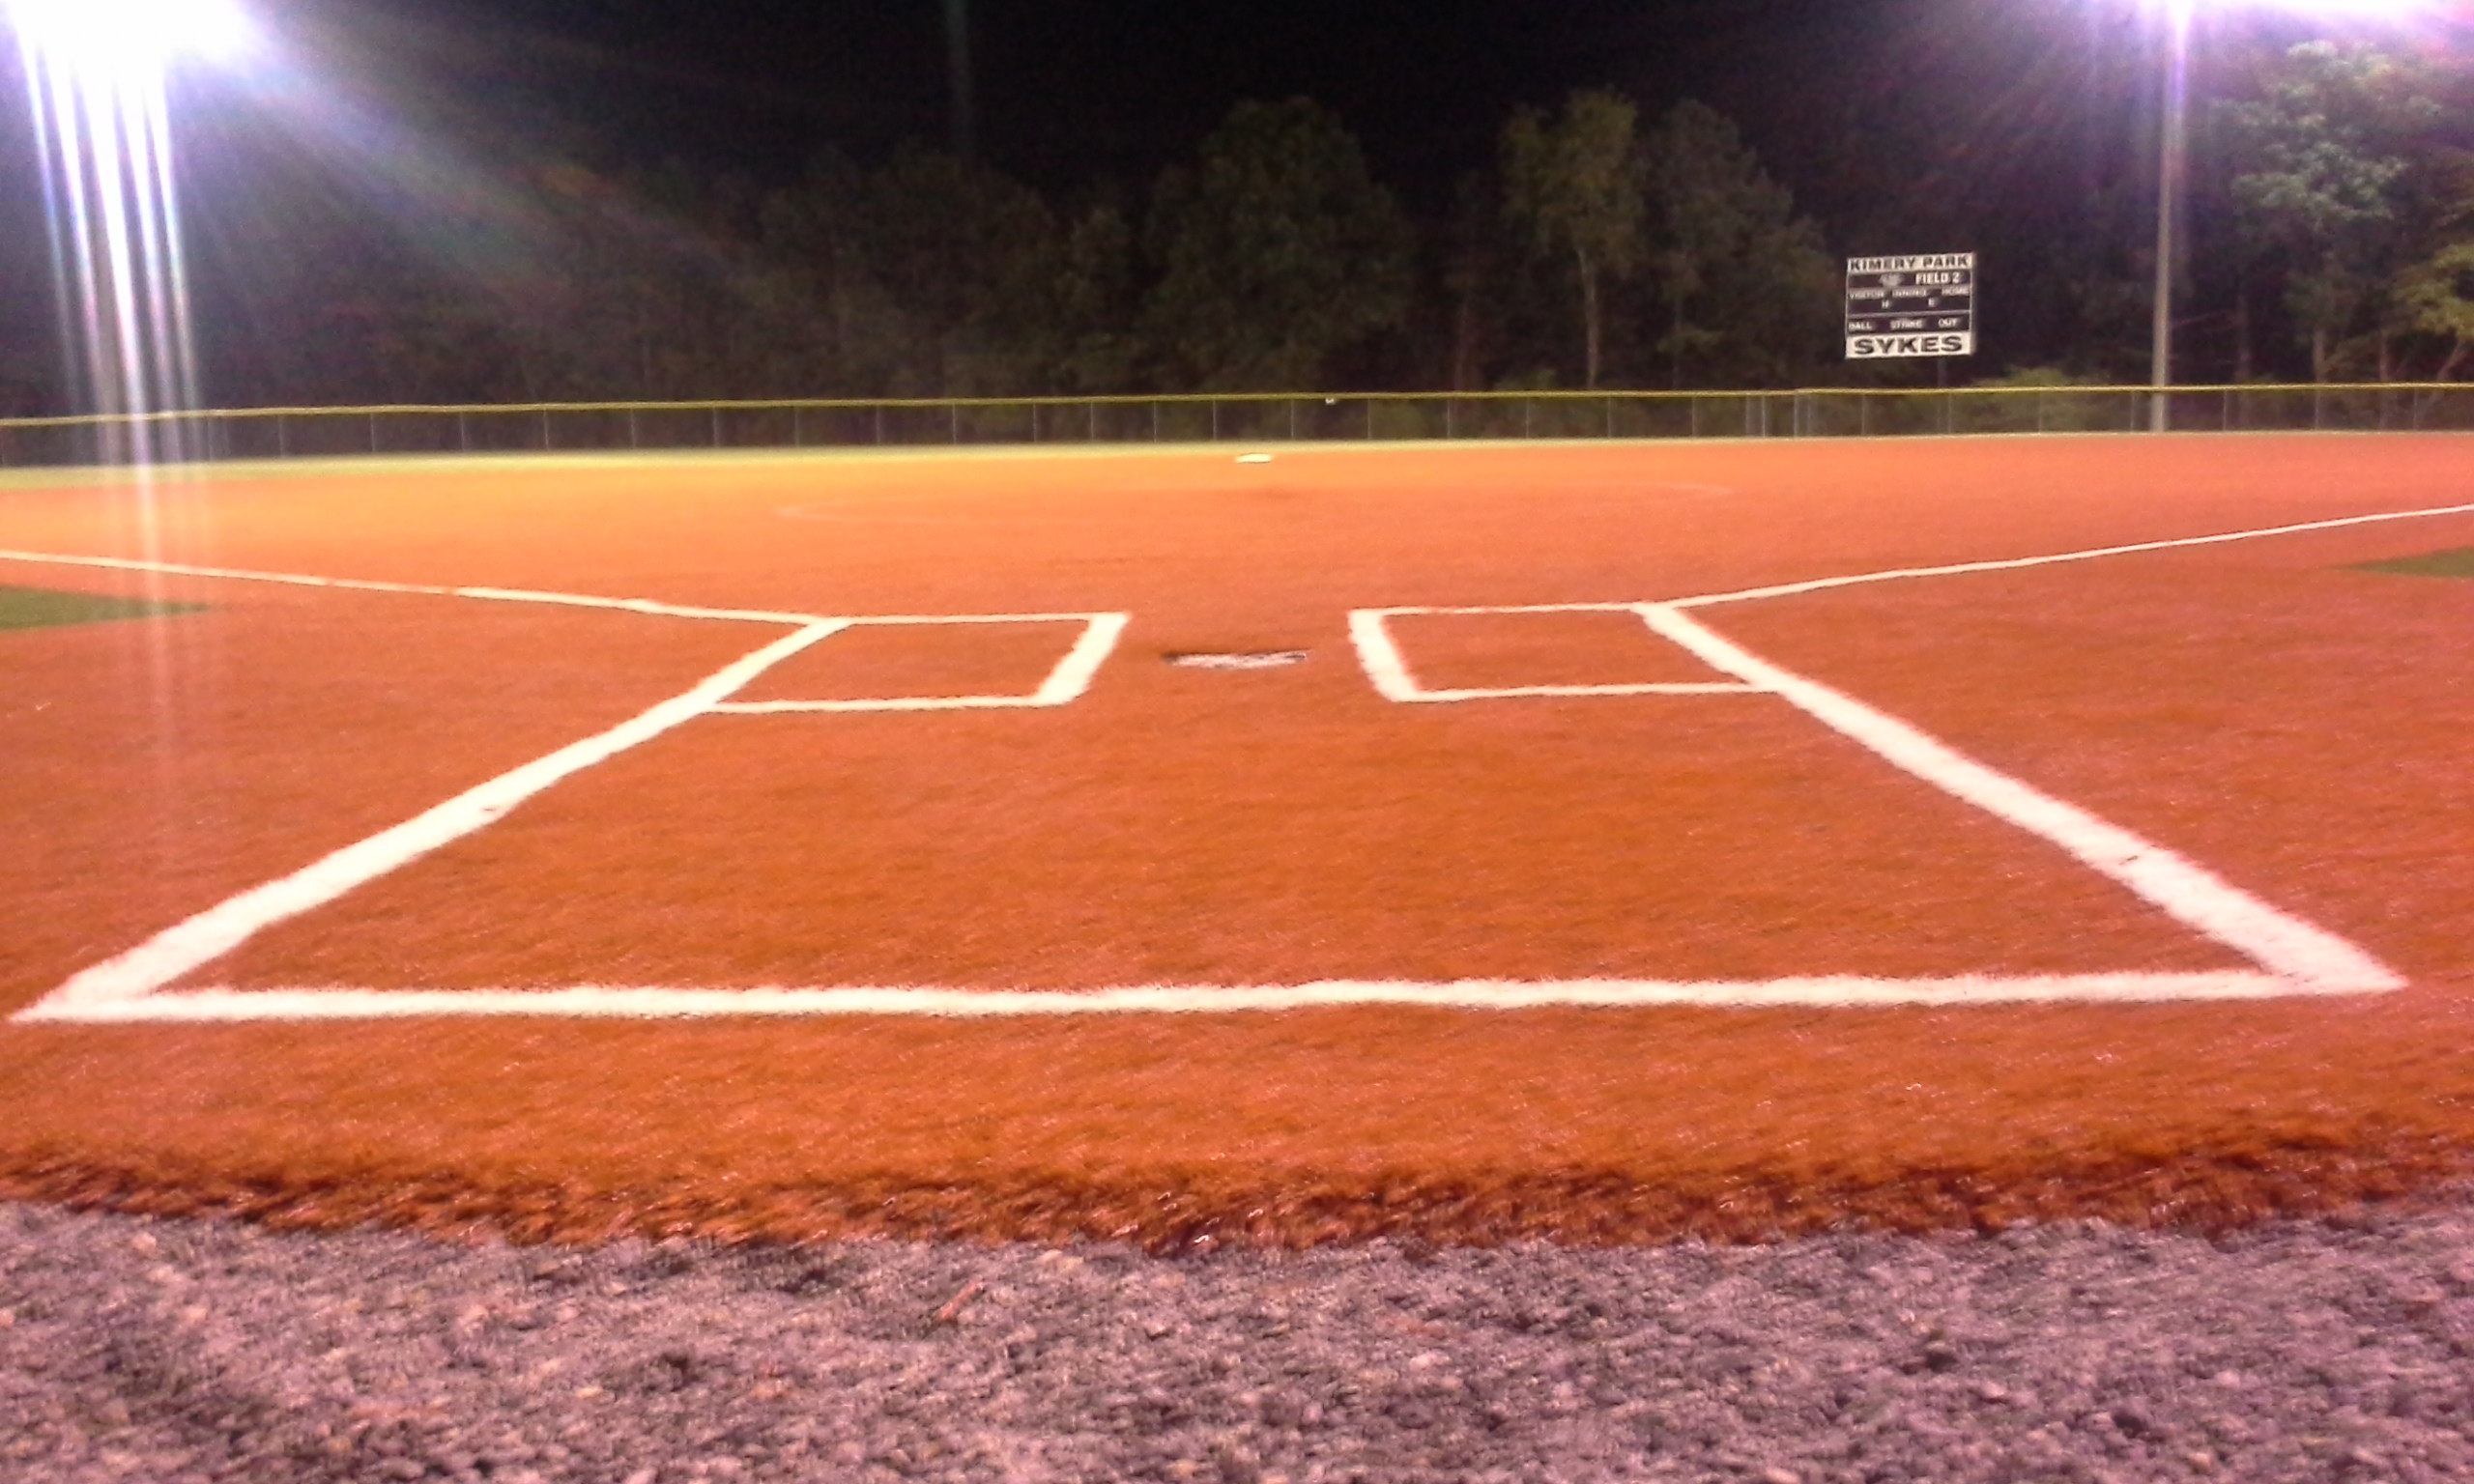 Adult Slowpitch Softball | Hot Springs, AR - Official Website